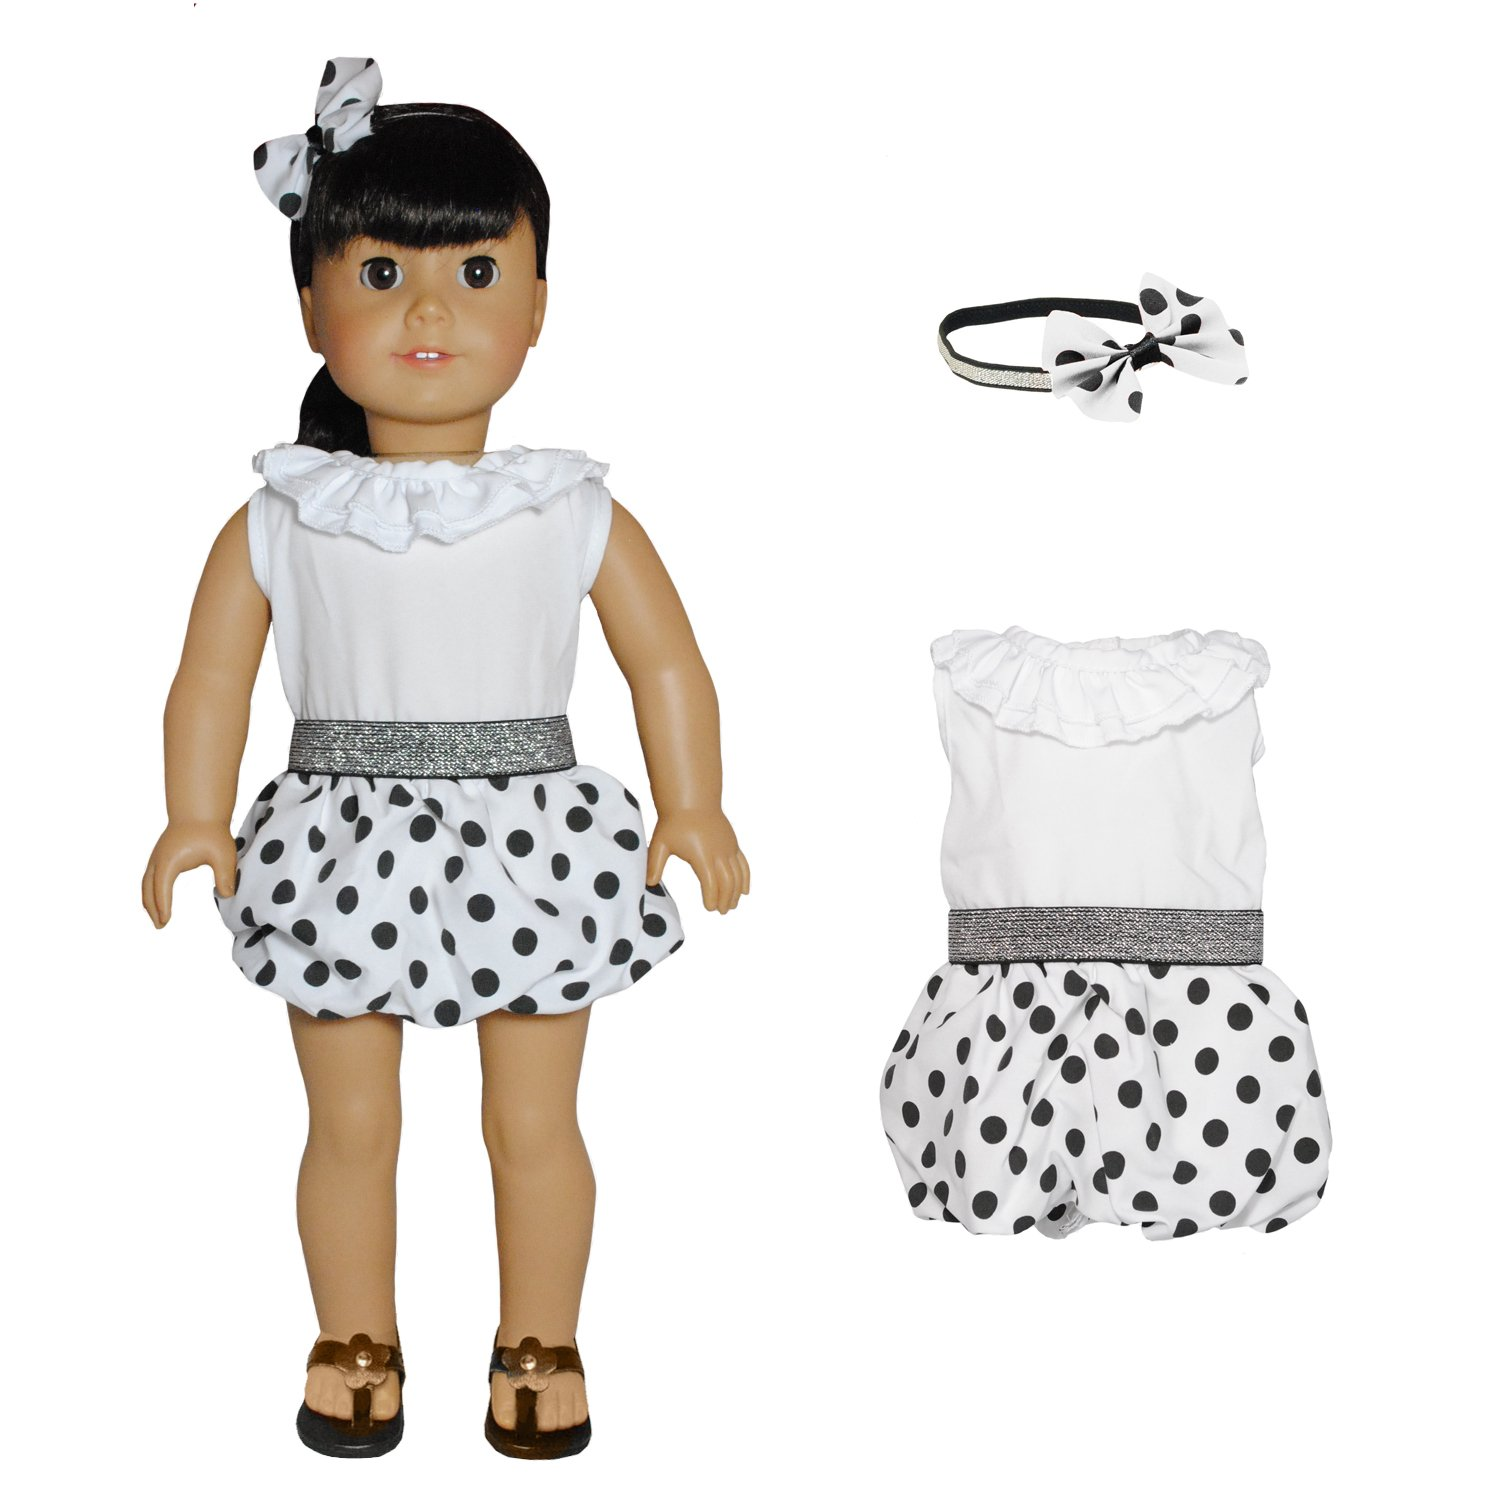 Pink Butterfly Closet Doll Clothes Our Generation and other 18 inch Dolls american girl doll Dress white White Polka Dots Dress with Head Band Set Fits American Girl Doll My Life Doll